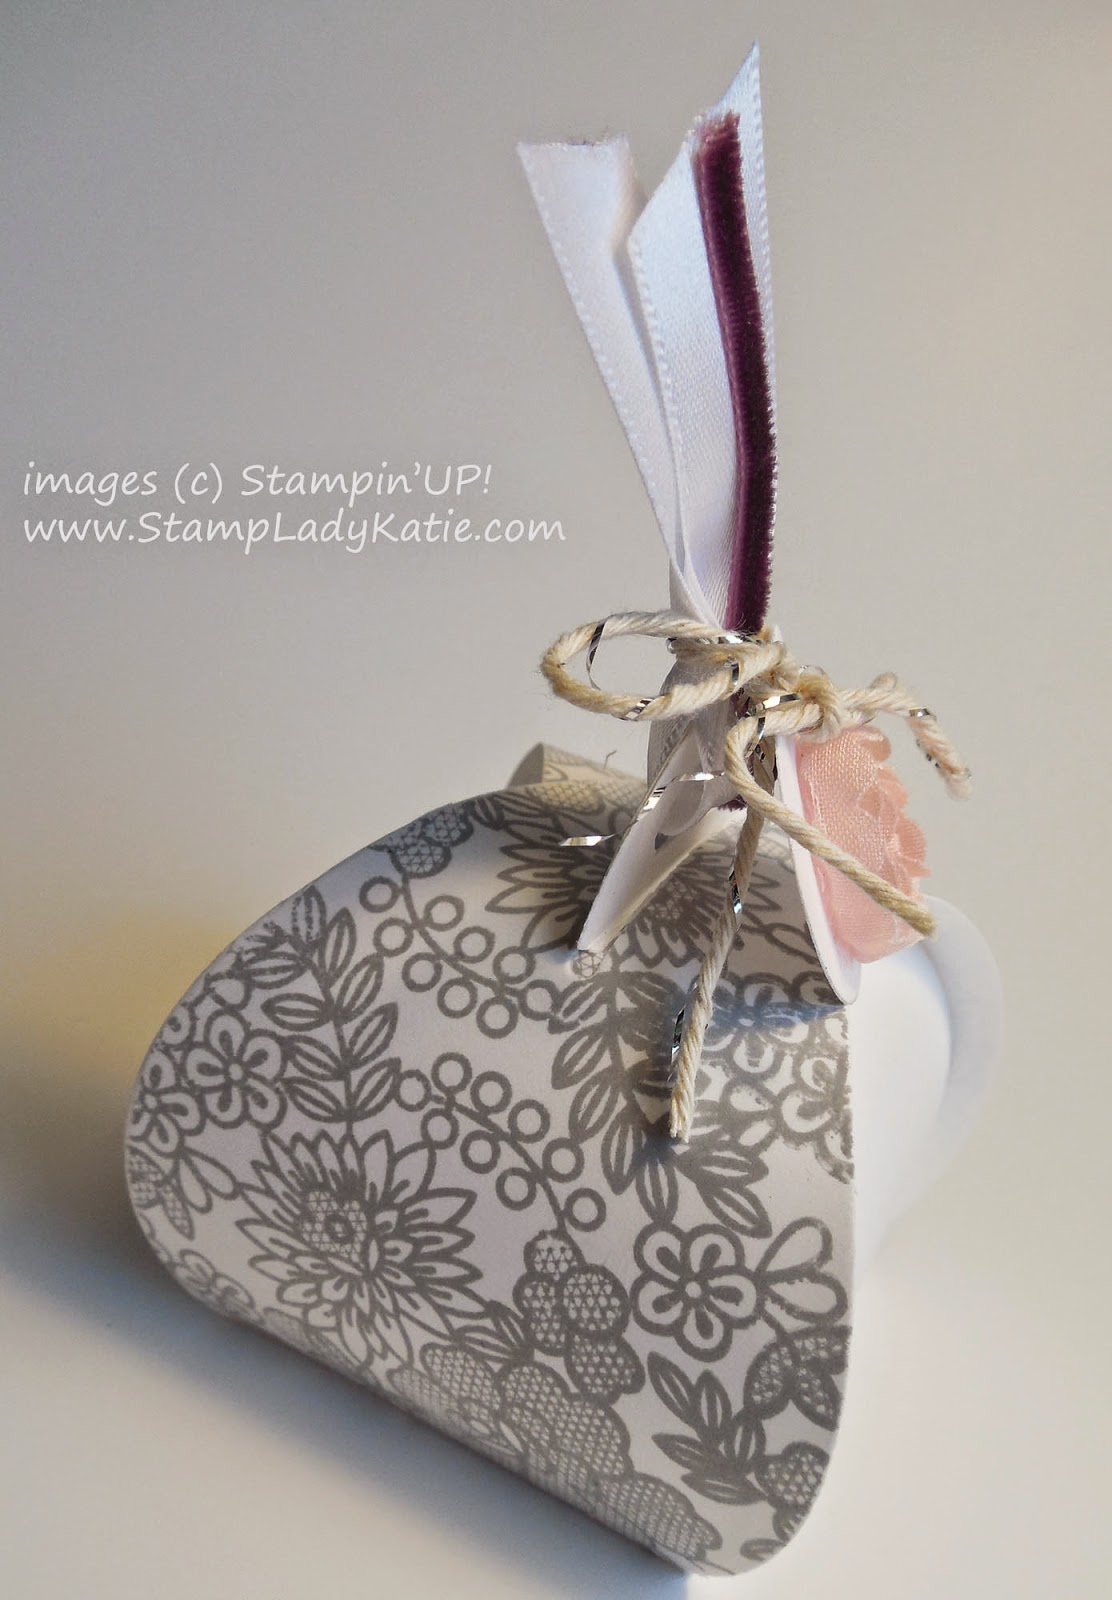 Table Favor for a wedding shower or baby shower made from Stampin'UP!'s Curvy Box Thinlet Die